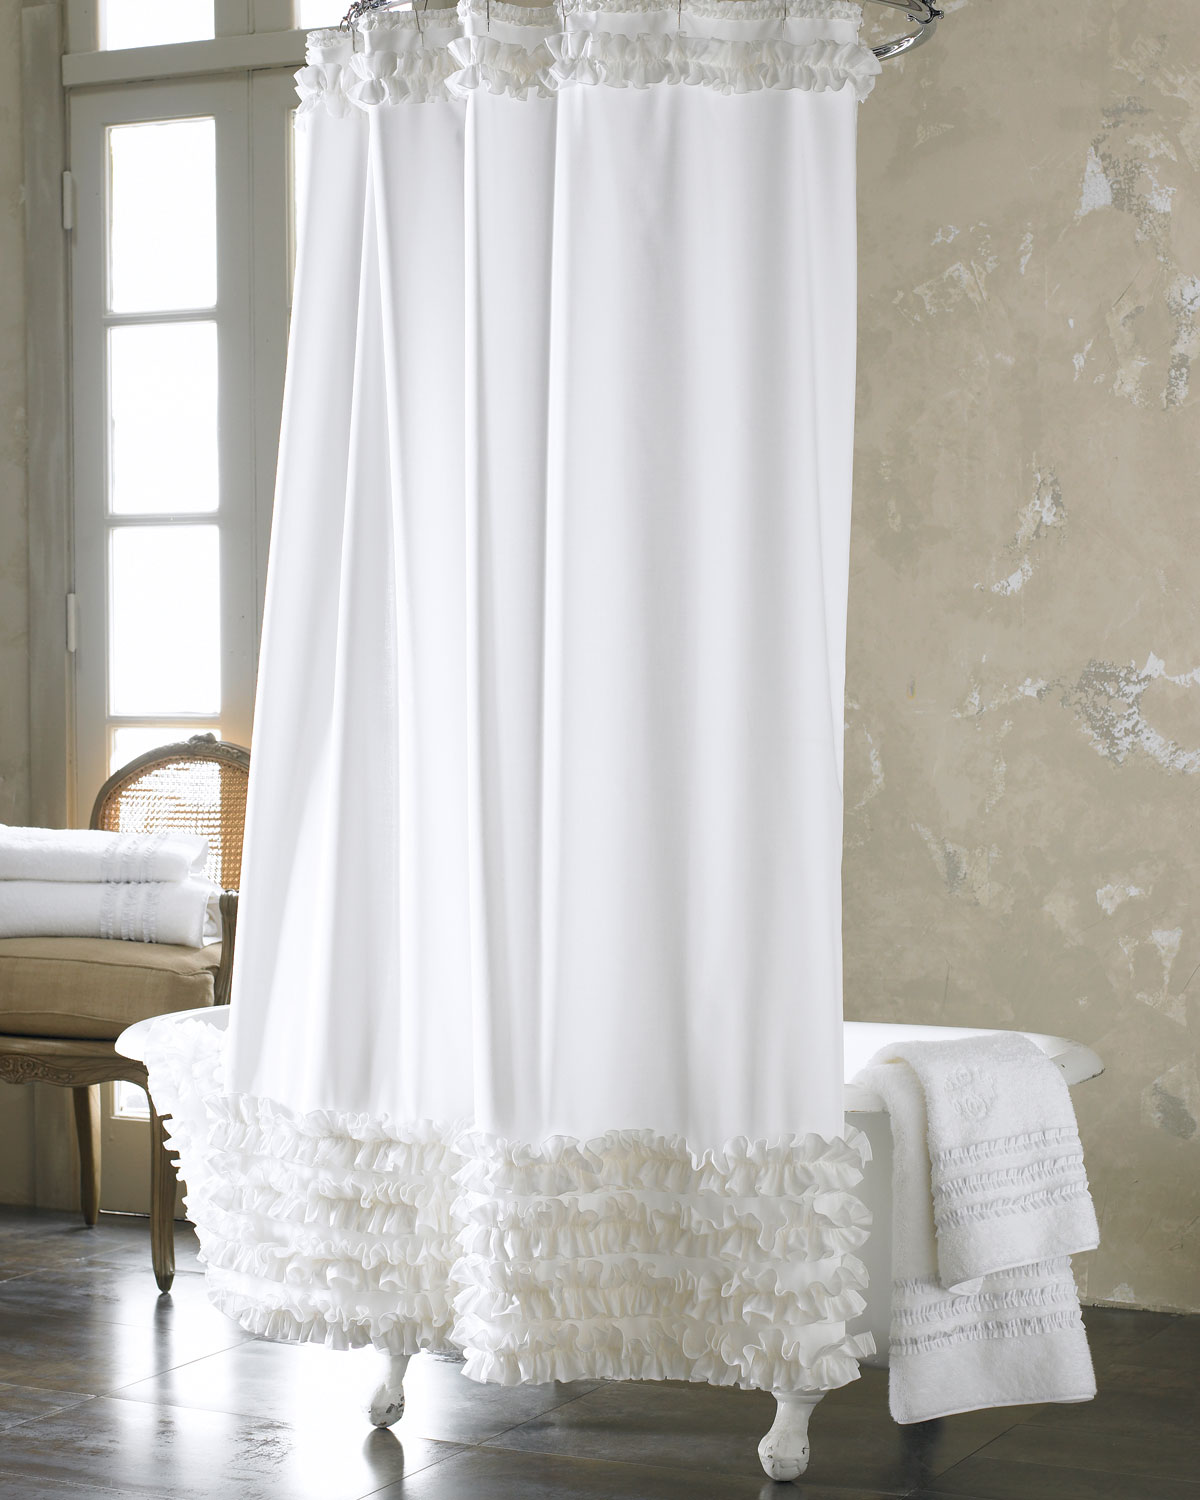 Designer Shower Curtain | Neiman Marcus